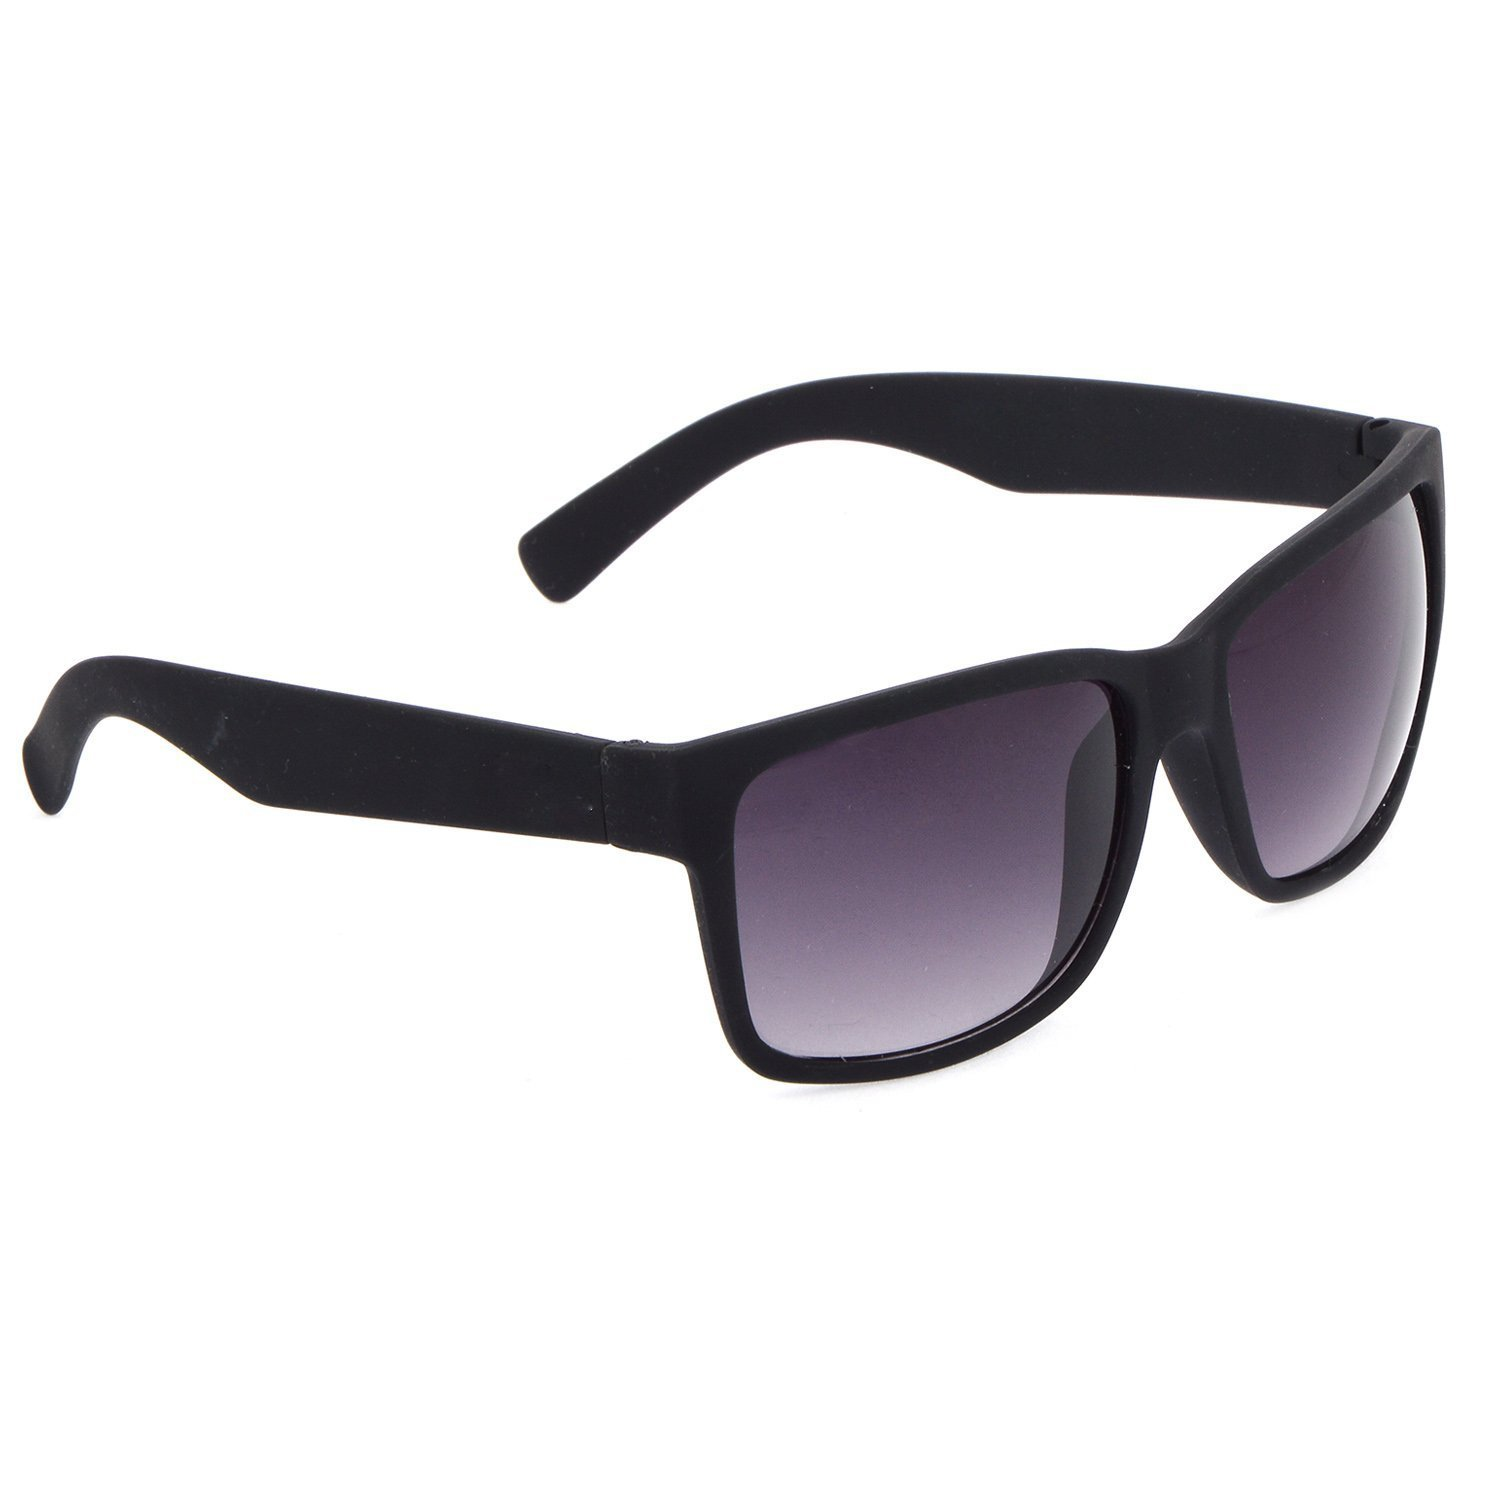 Red Knot Black Wayfarer Sunglasses For Men Clothing Redknot Shoes Tech Brown Accessories